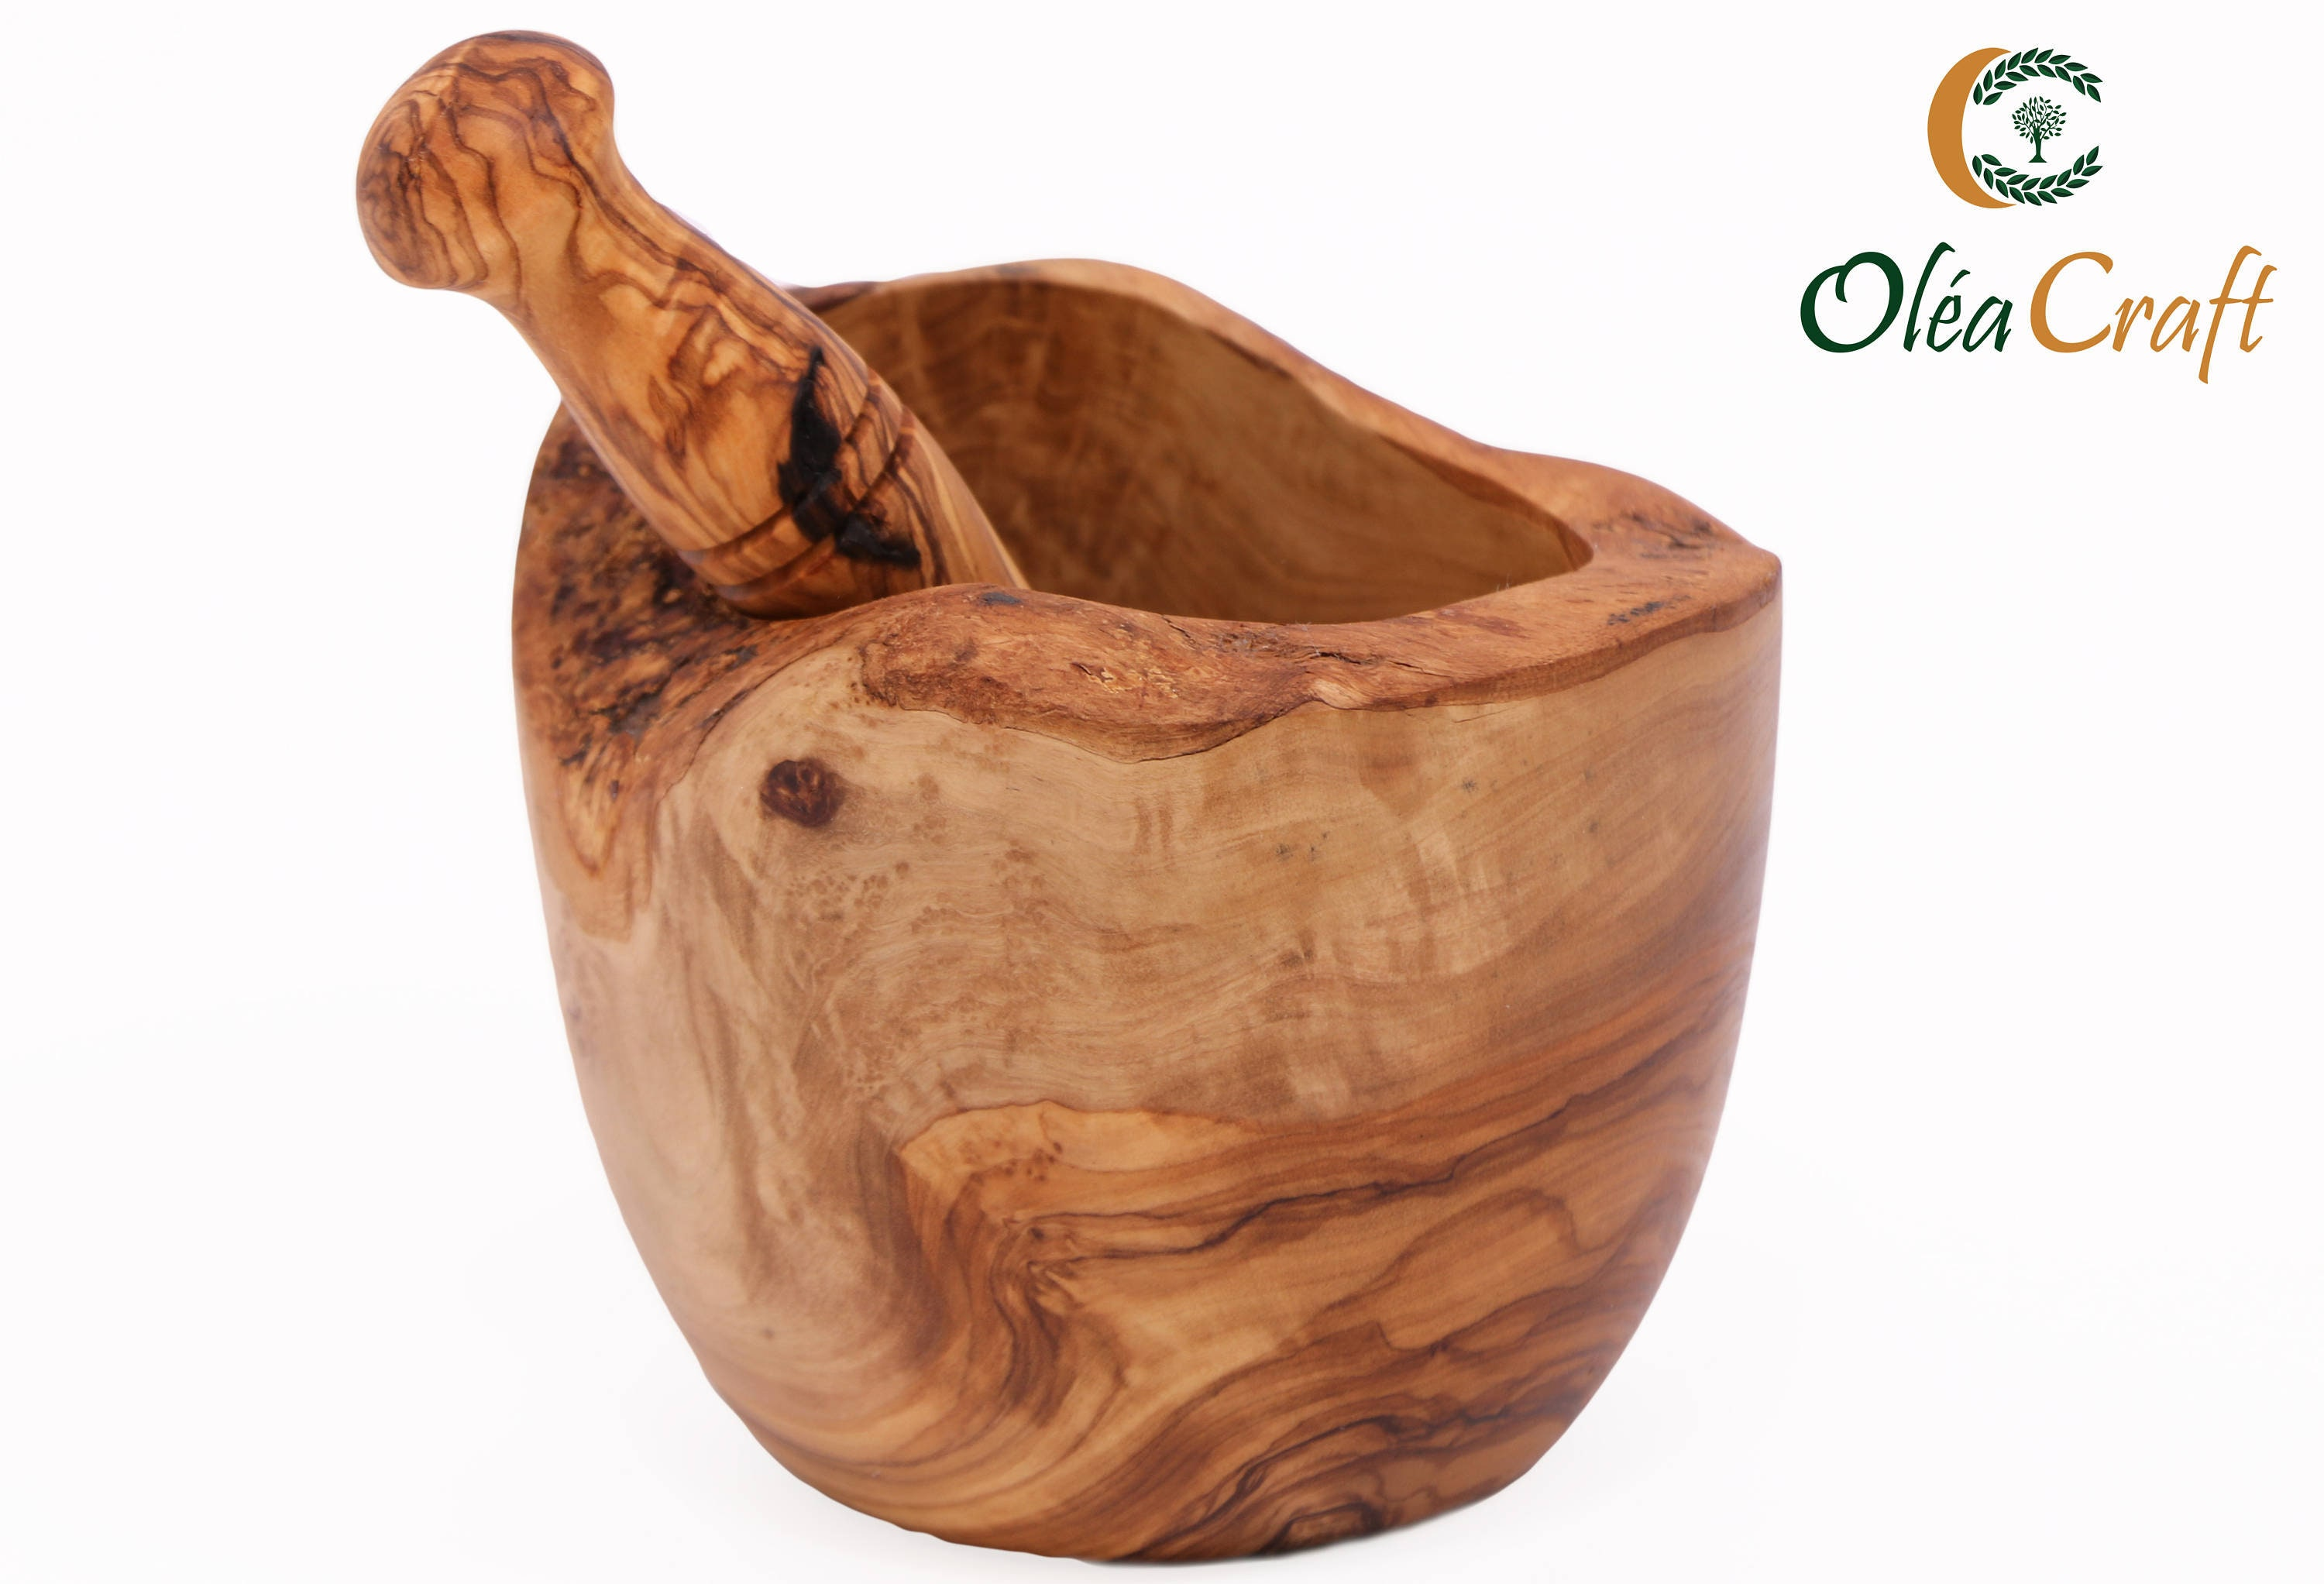 Olive Wood 3 Mortar and Pestle Handmade Crush Spices Garlic Smasher Gift Idea 3